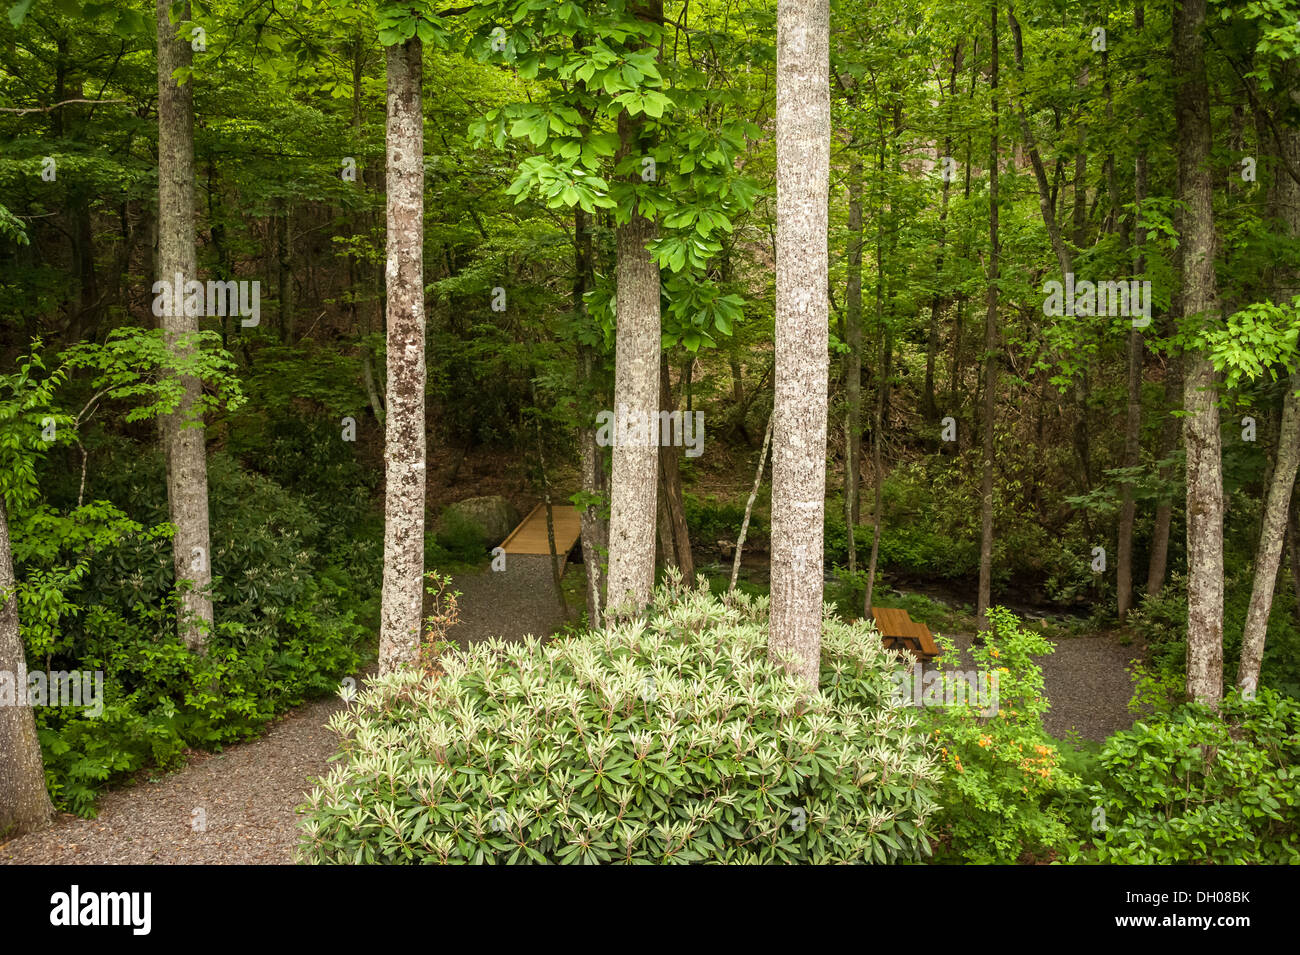 view from the deck of a lush wooded backyard with creek picnic